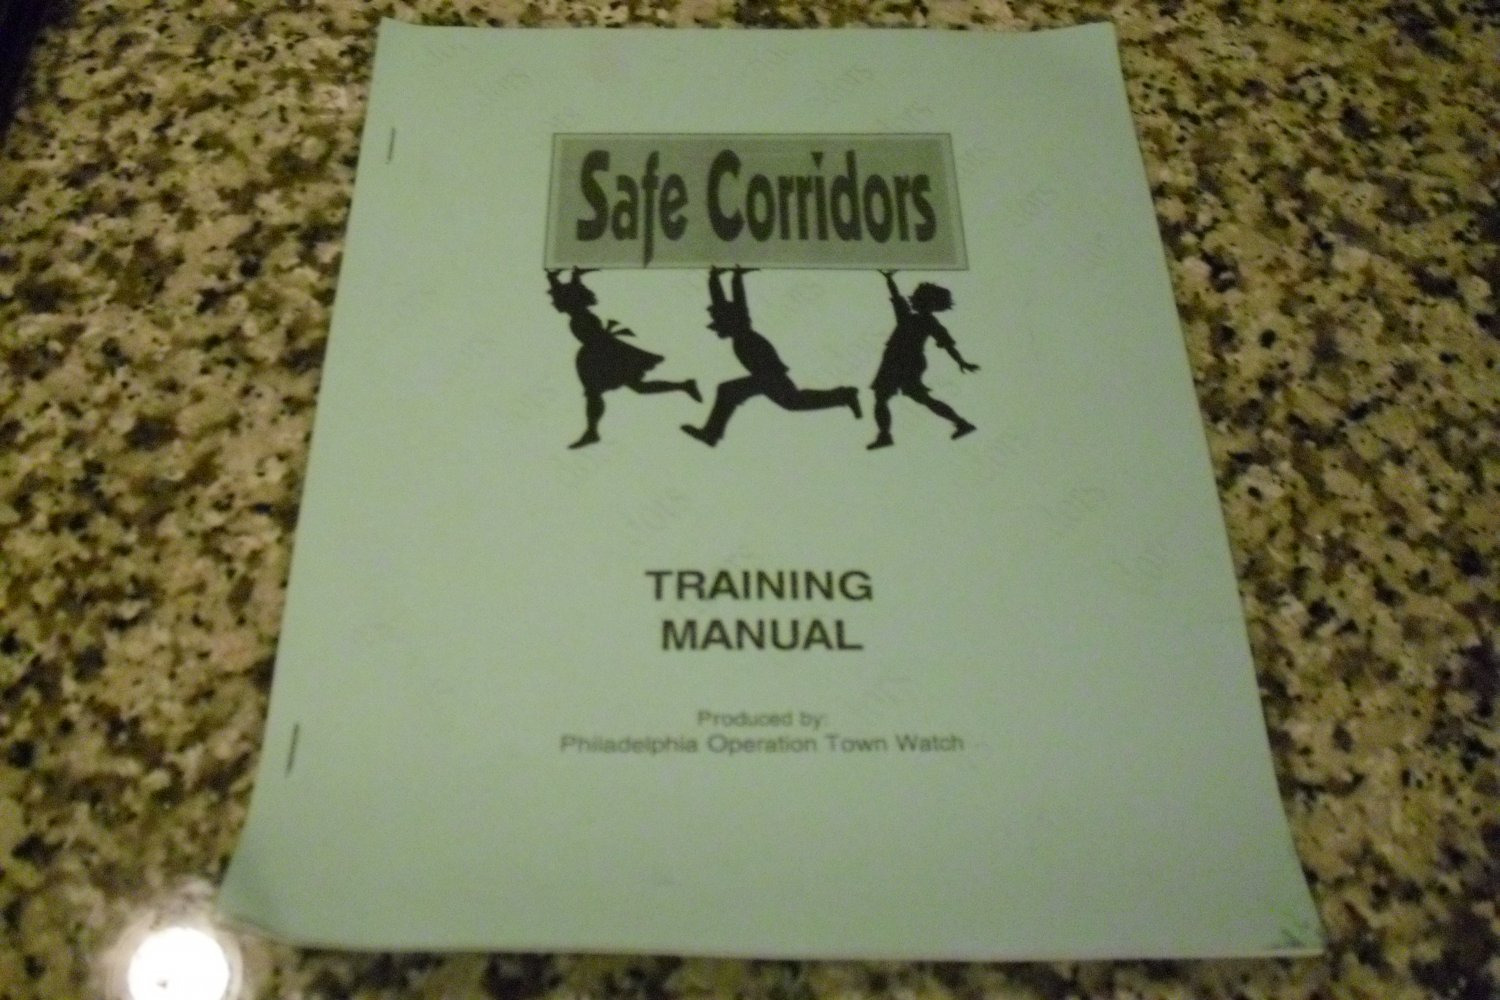 Safe Corridors Training Manual by Philadelphia Operation Town Watch